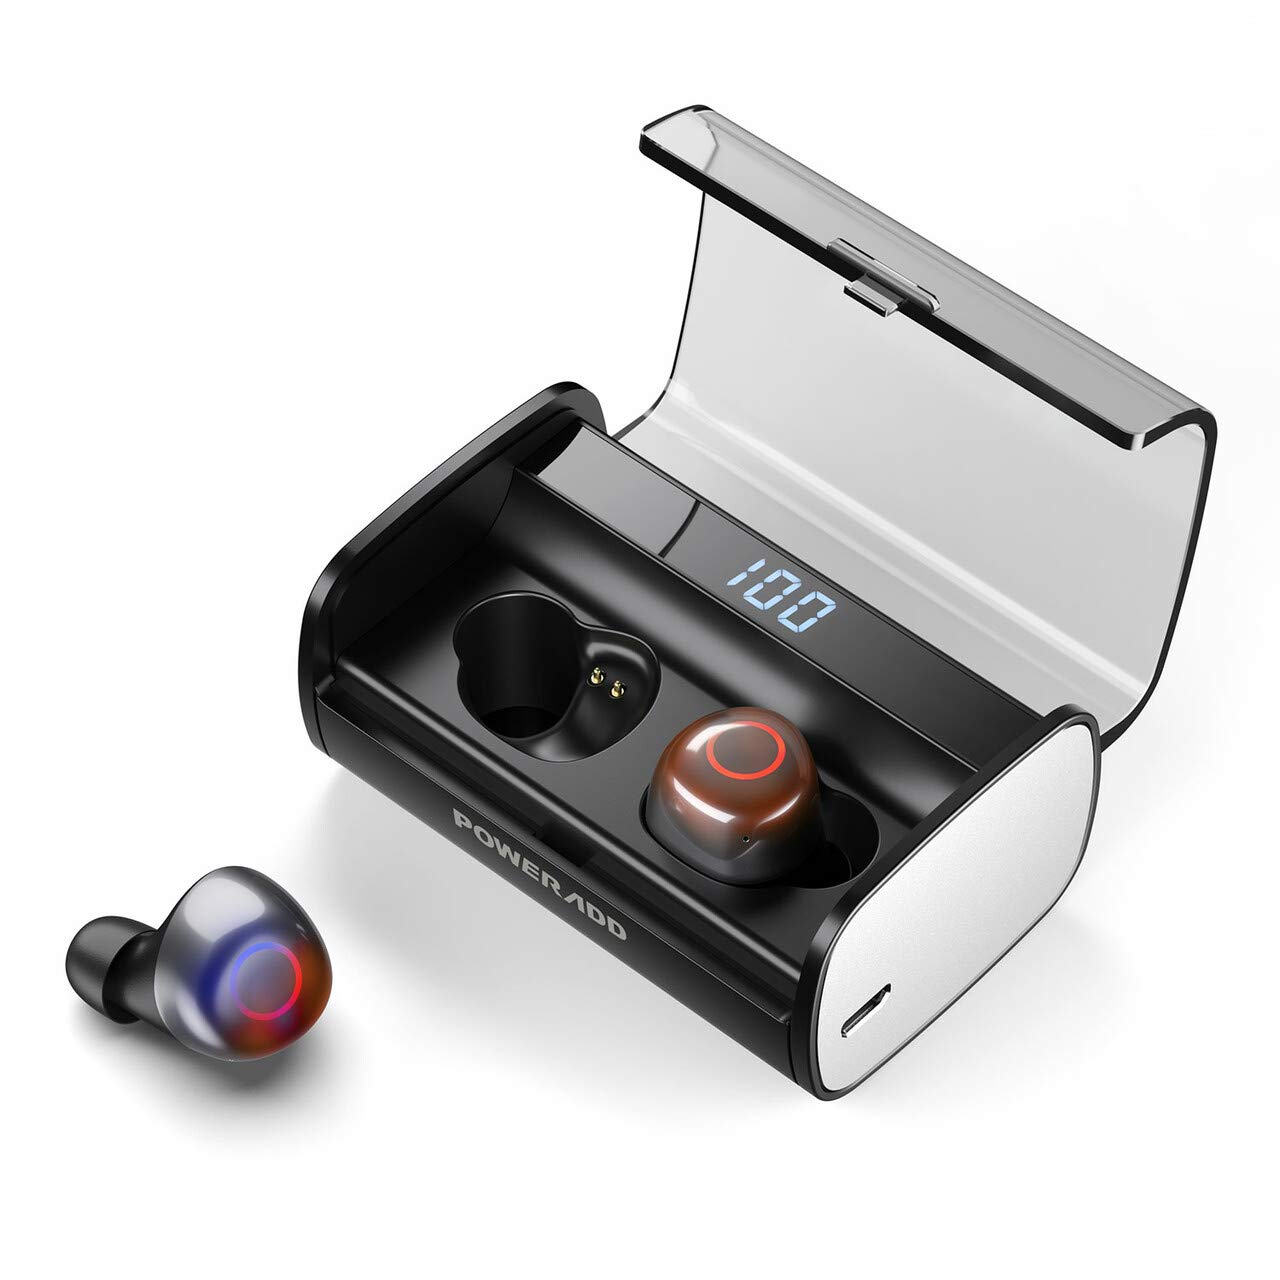 Poweradd wireless earbuds